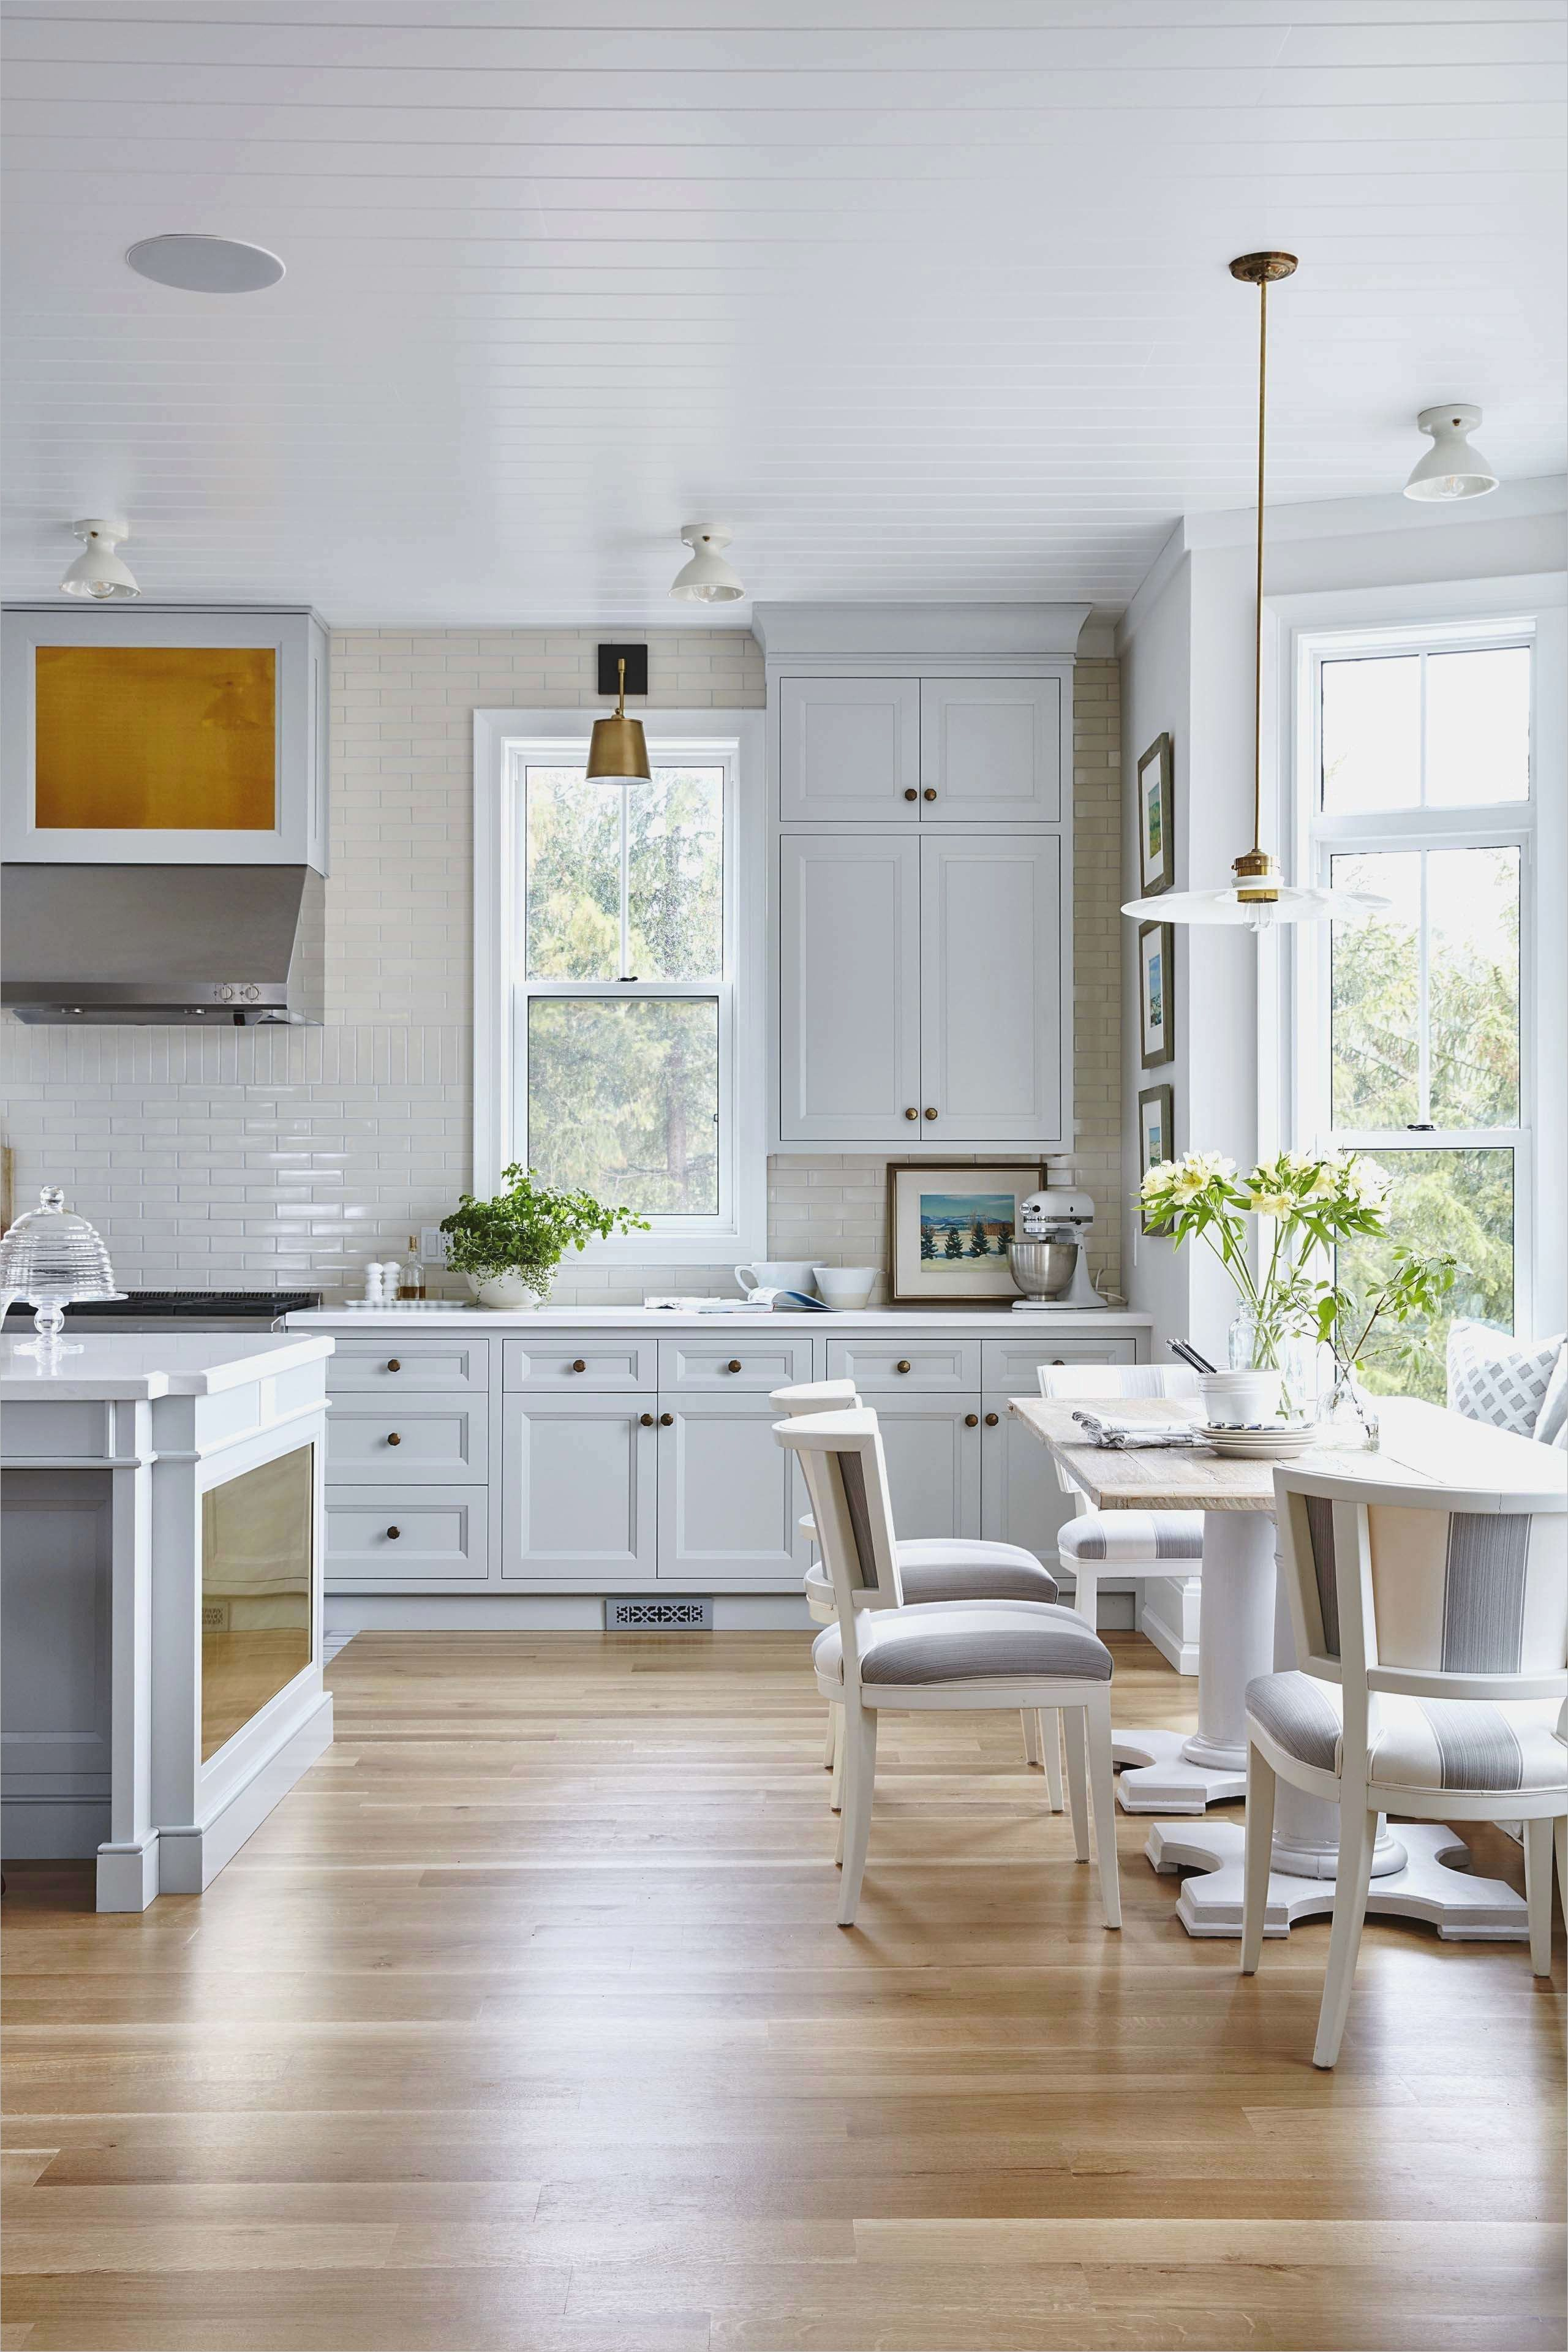 Living Room With Open Kitchen Ideas Colour Living Room Kitchen Tiles Design White Kitchen Floor Small Country Kitchens